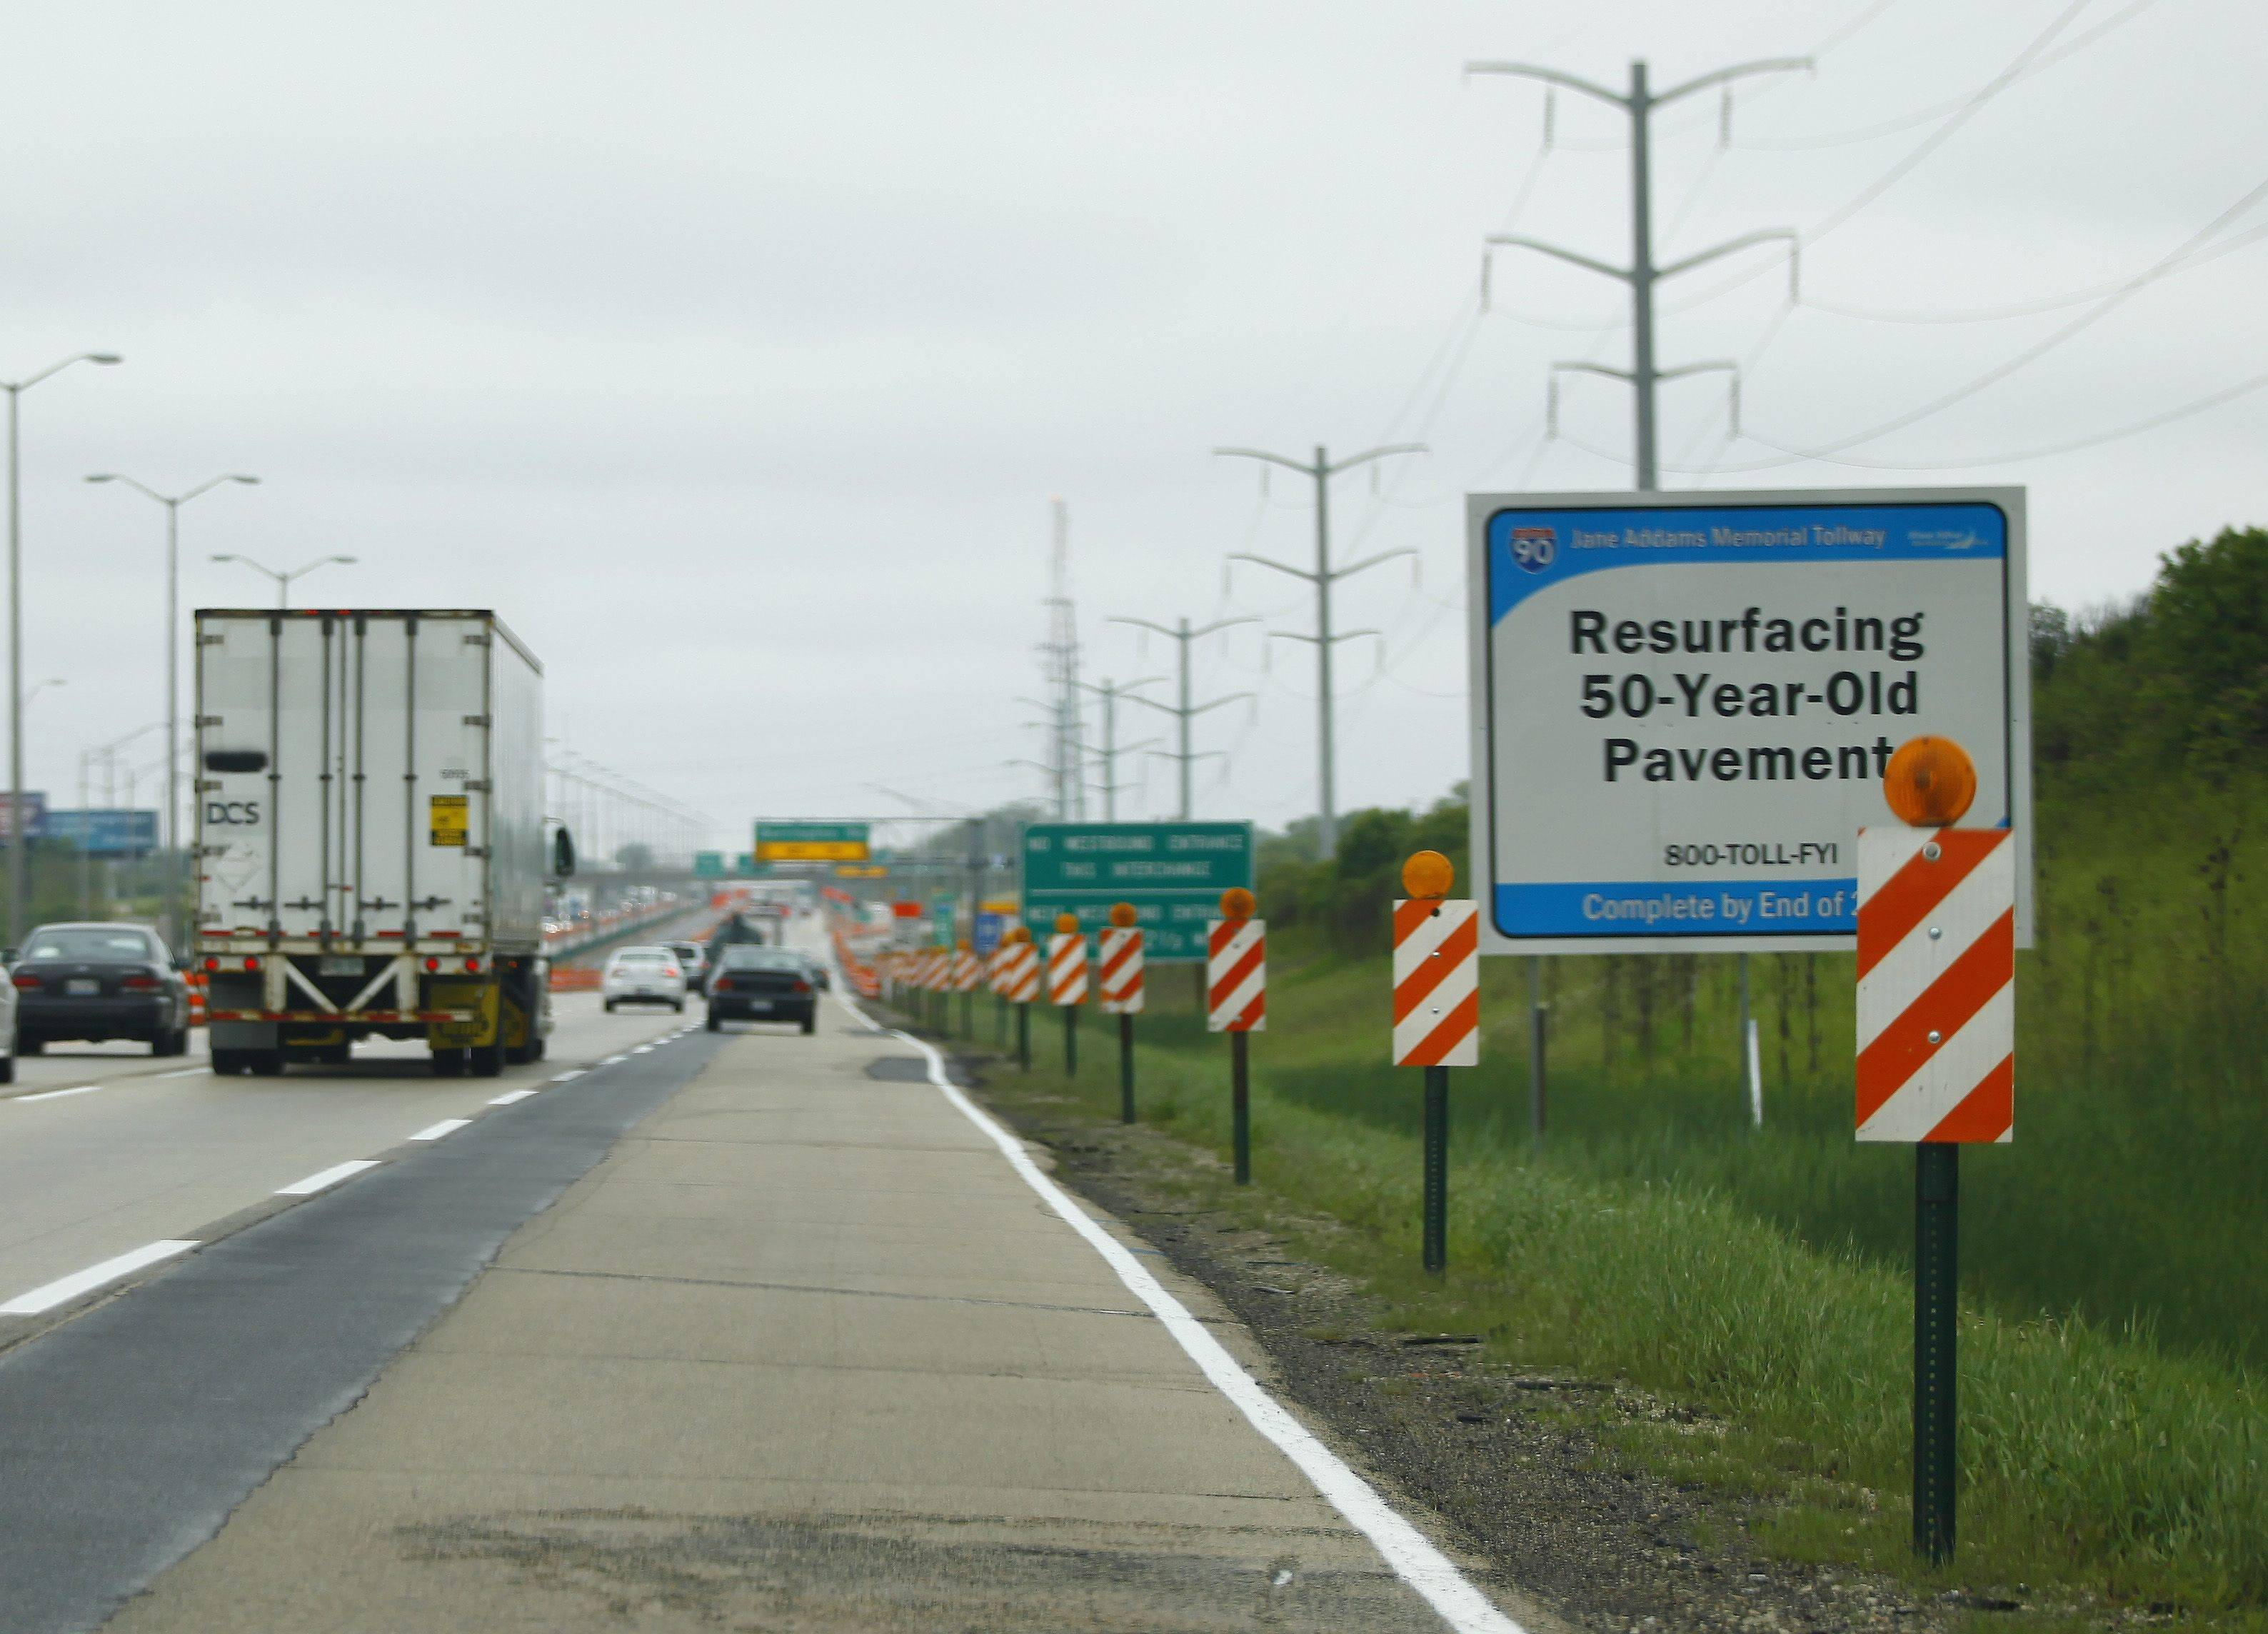 Roadwork has begun on a resurfacing project along I-90 between Barrington Road and the Elgin Toll Plaza.